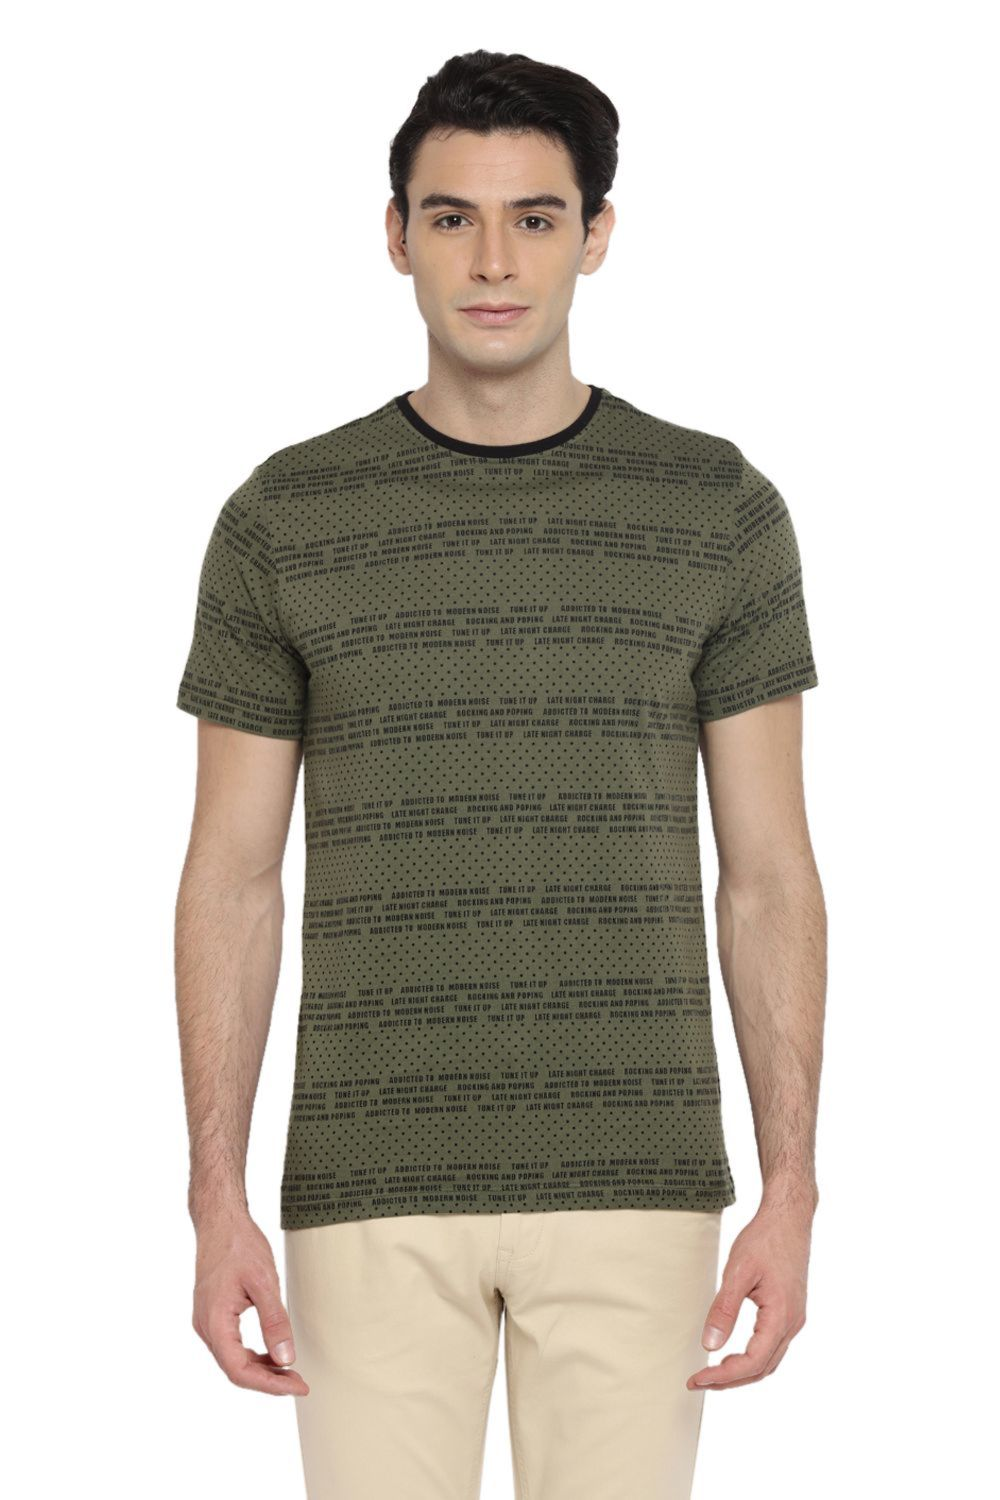 669417916a5 Buy T Shirts for Men Online with Best Price in India